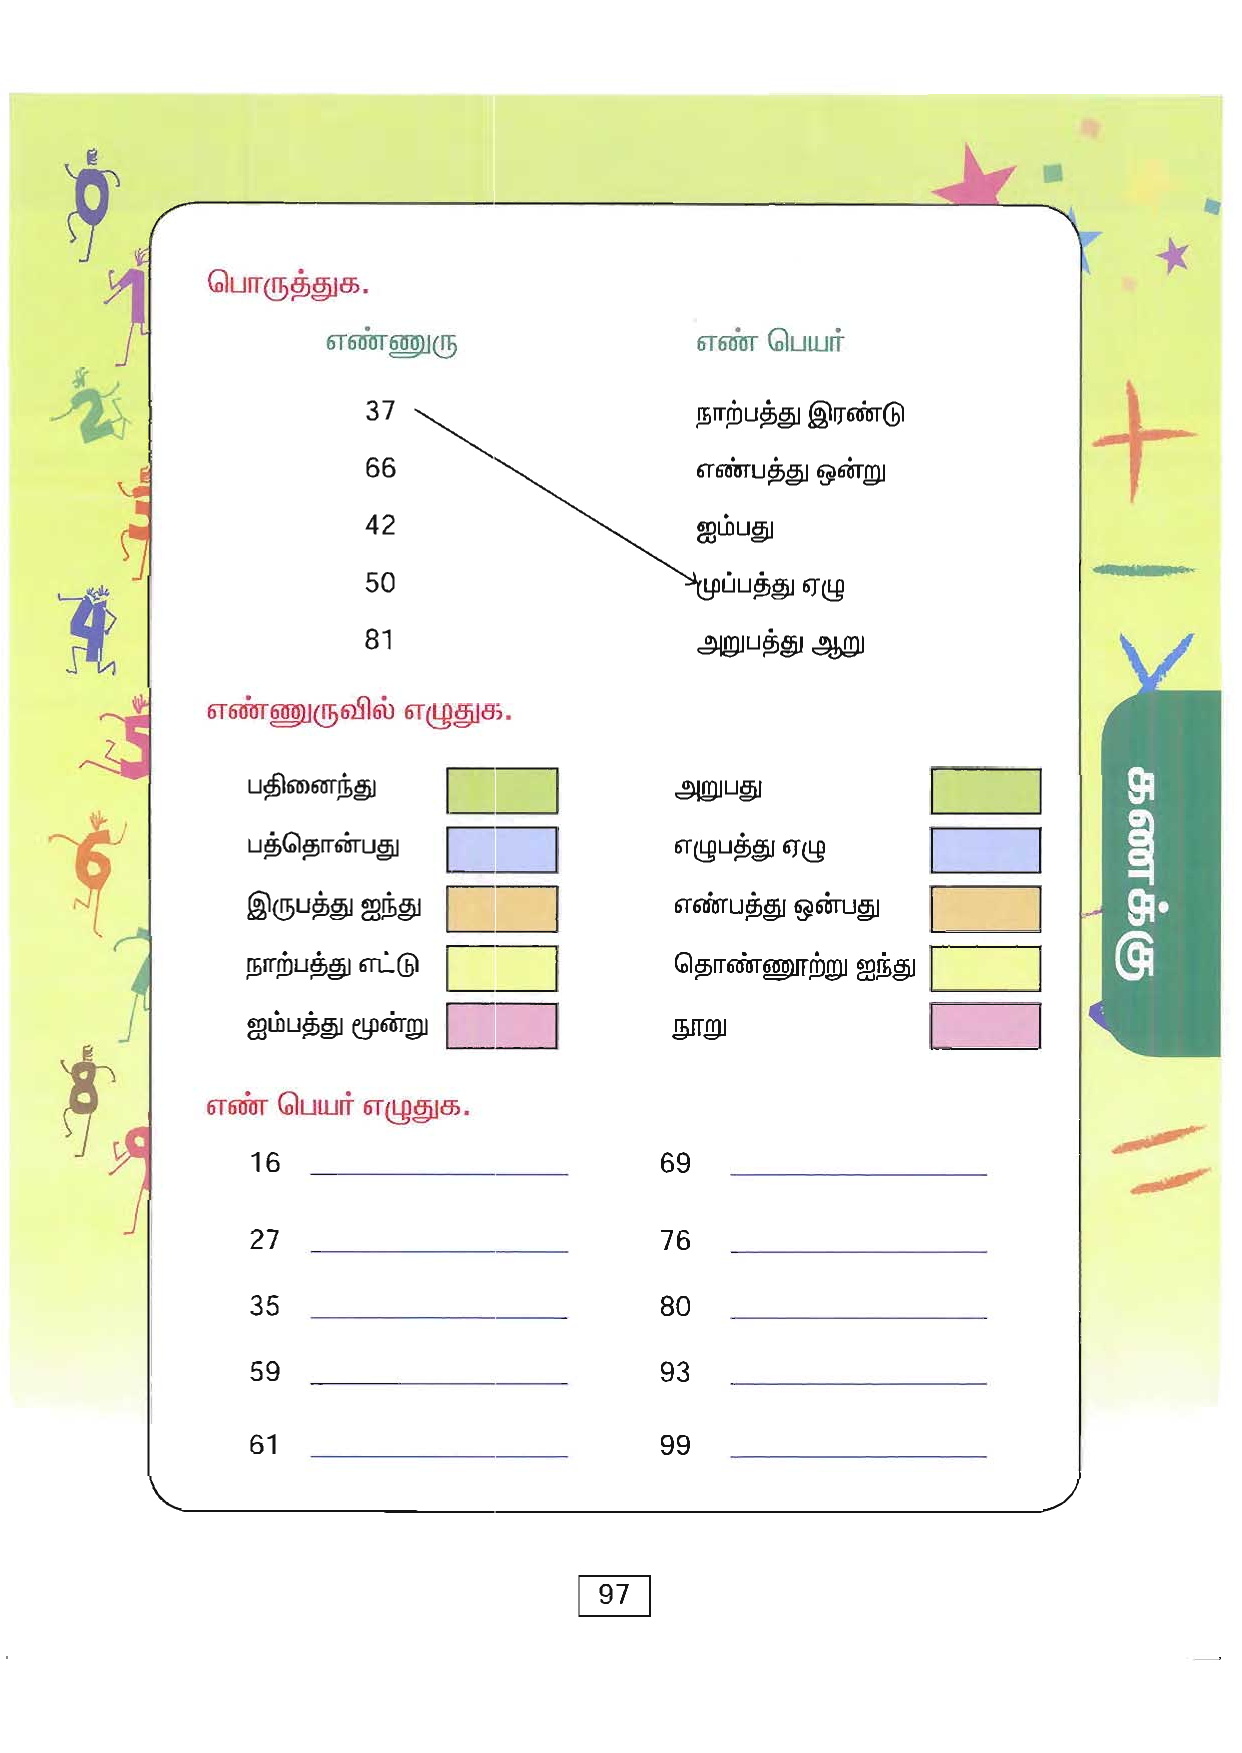 math worksheet : grade  standard  class 02 tamil medium mathematics text book ii : Std 2 Maths Worksheets